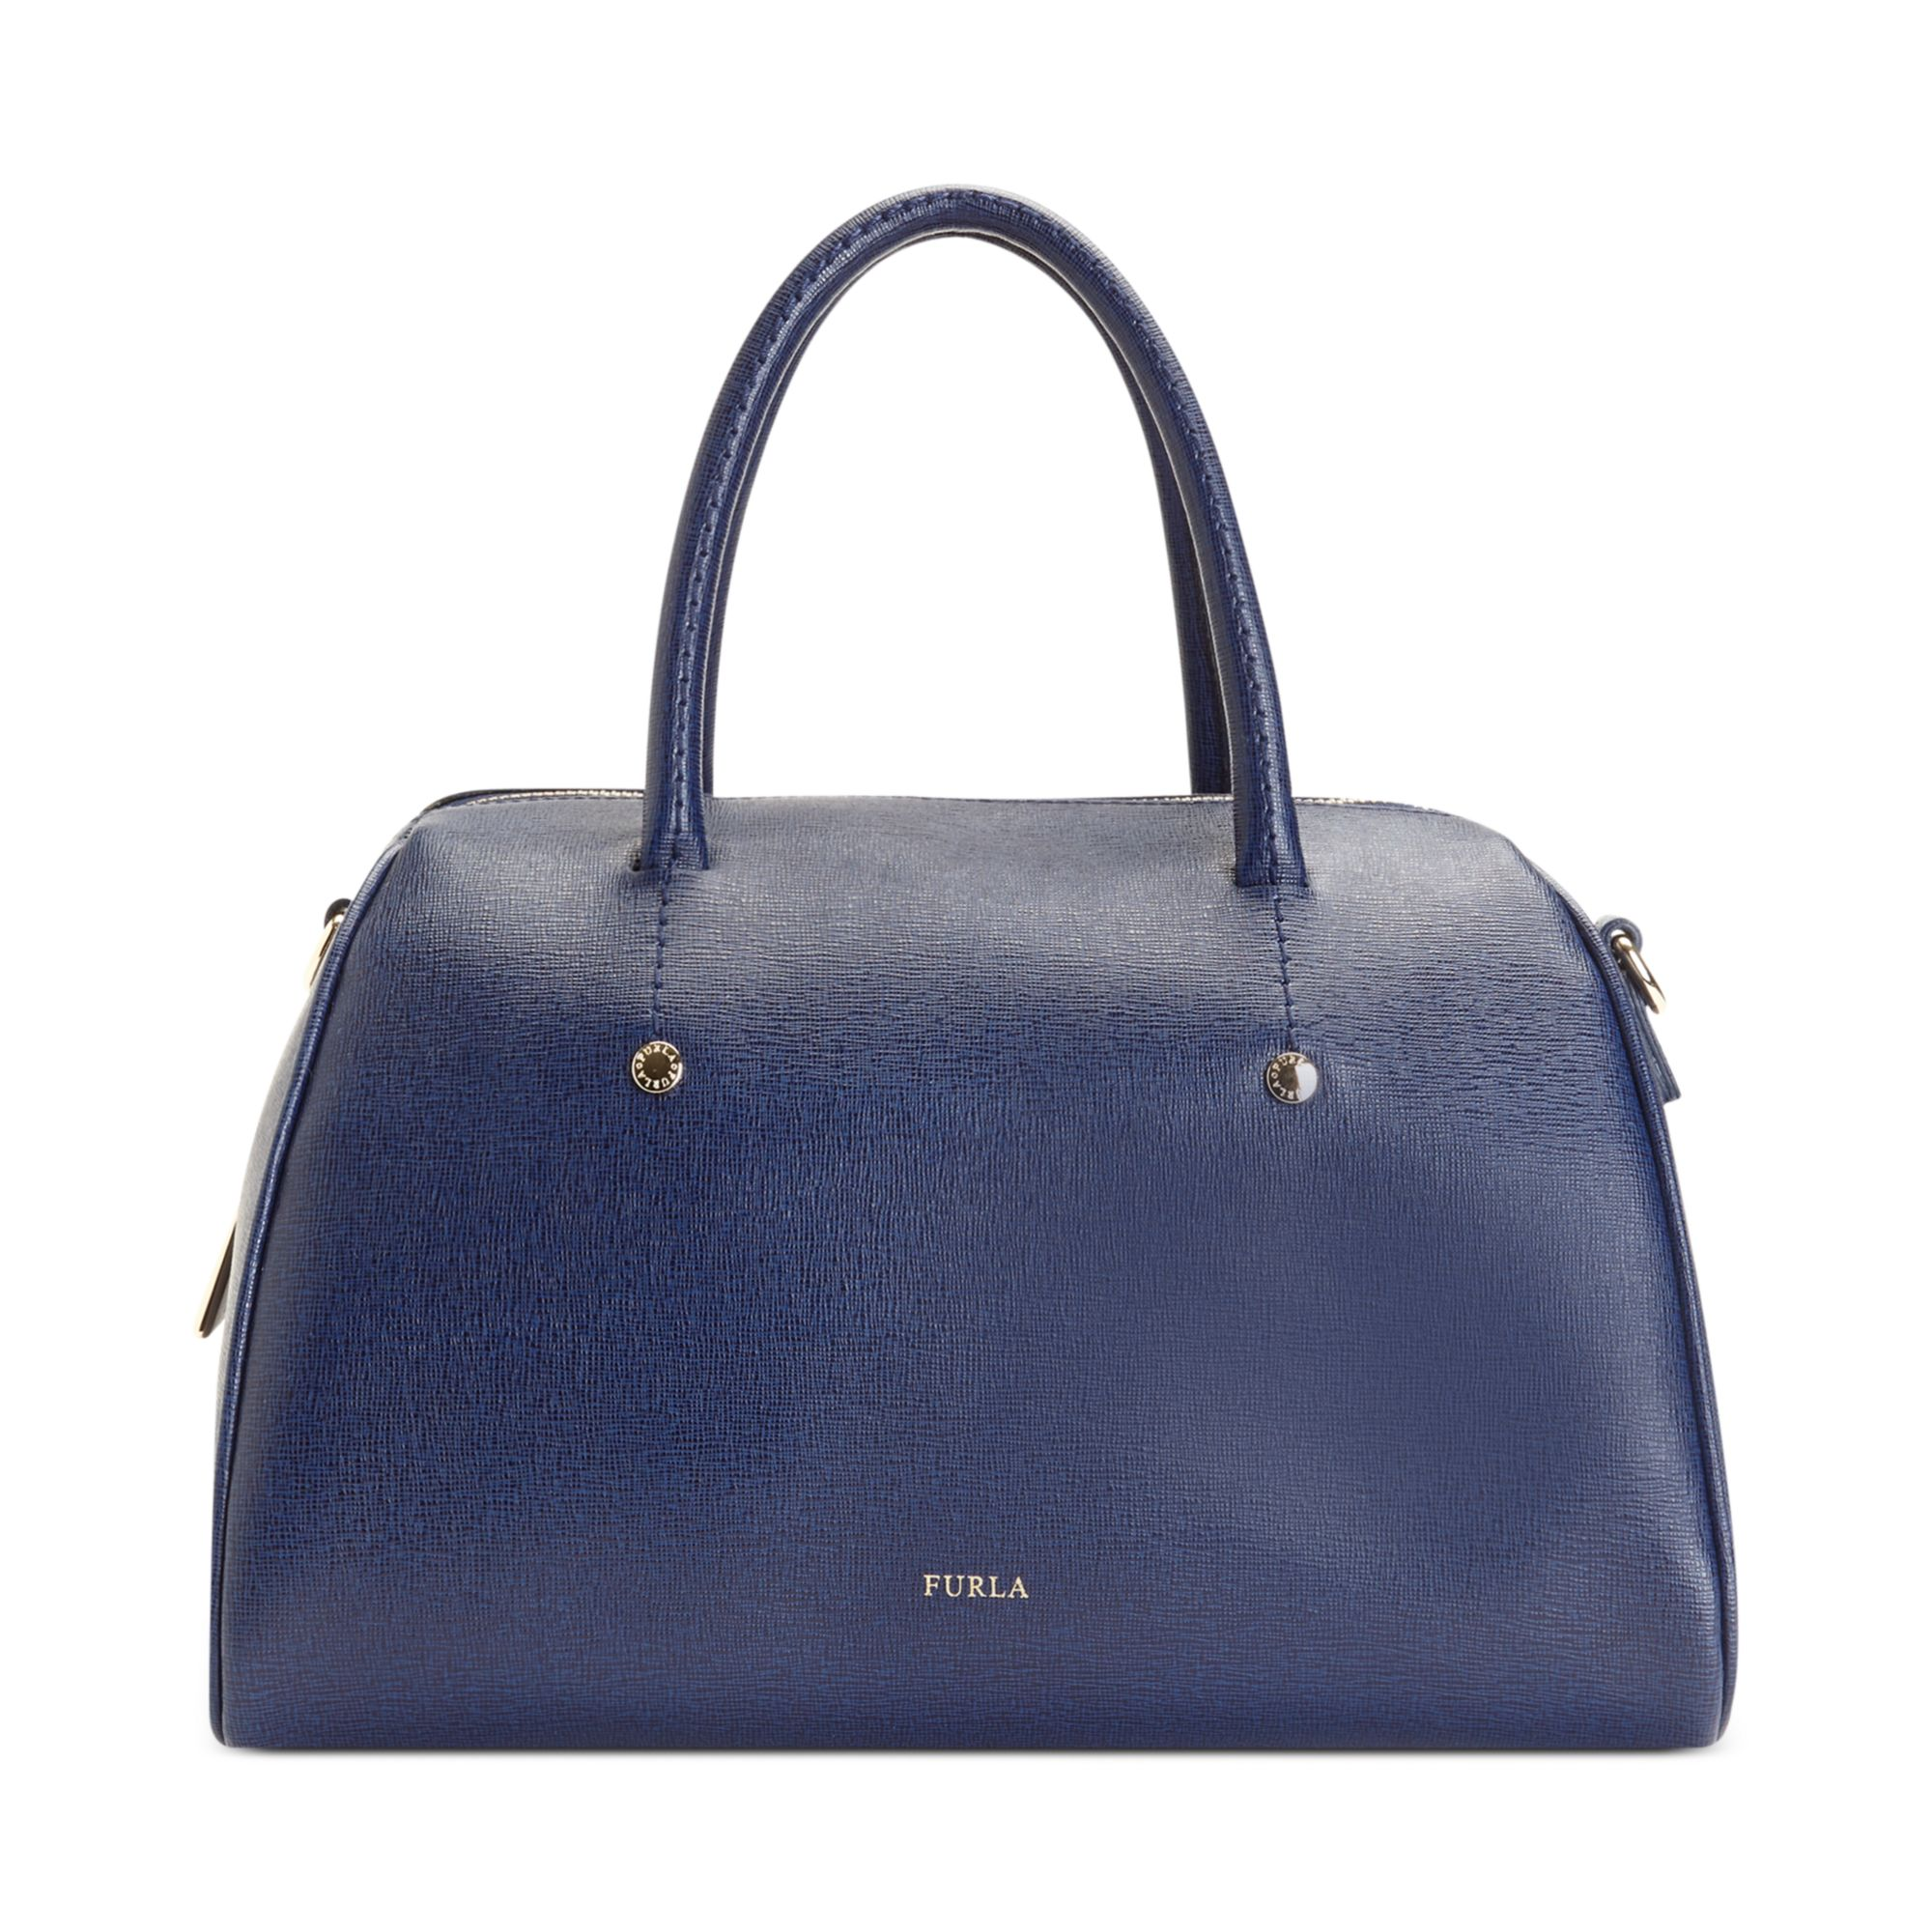 Furla Arianna Medium Saffiano Bauletto Bag in Blue (Ink)